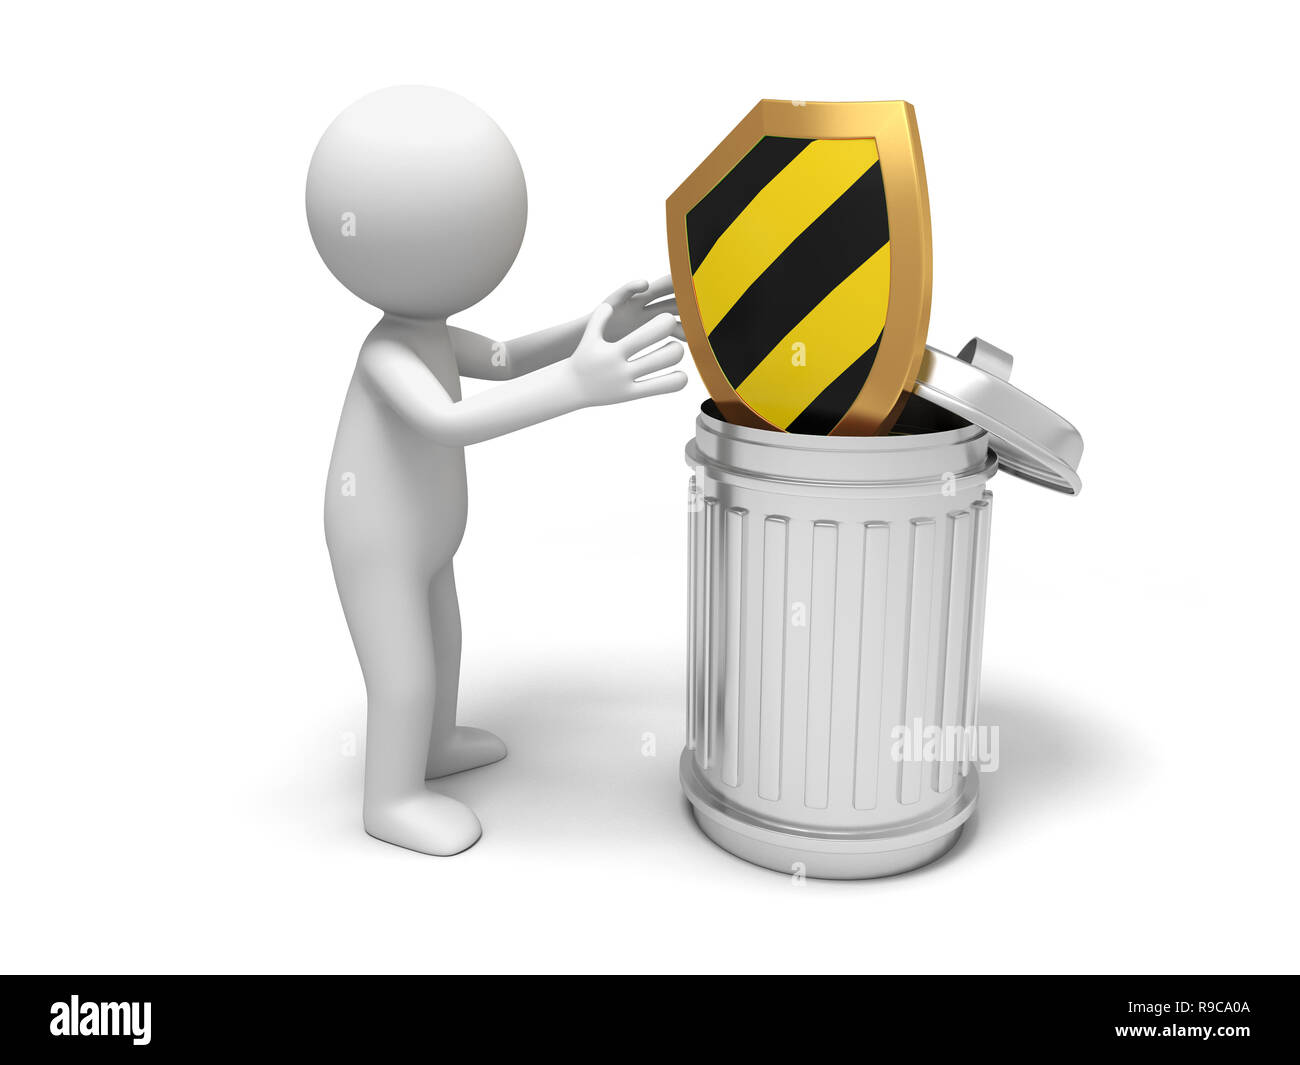 shield and trash can - Stock Image